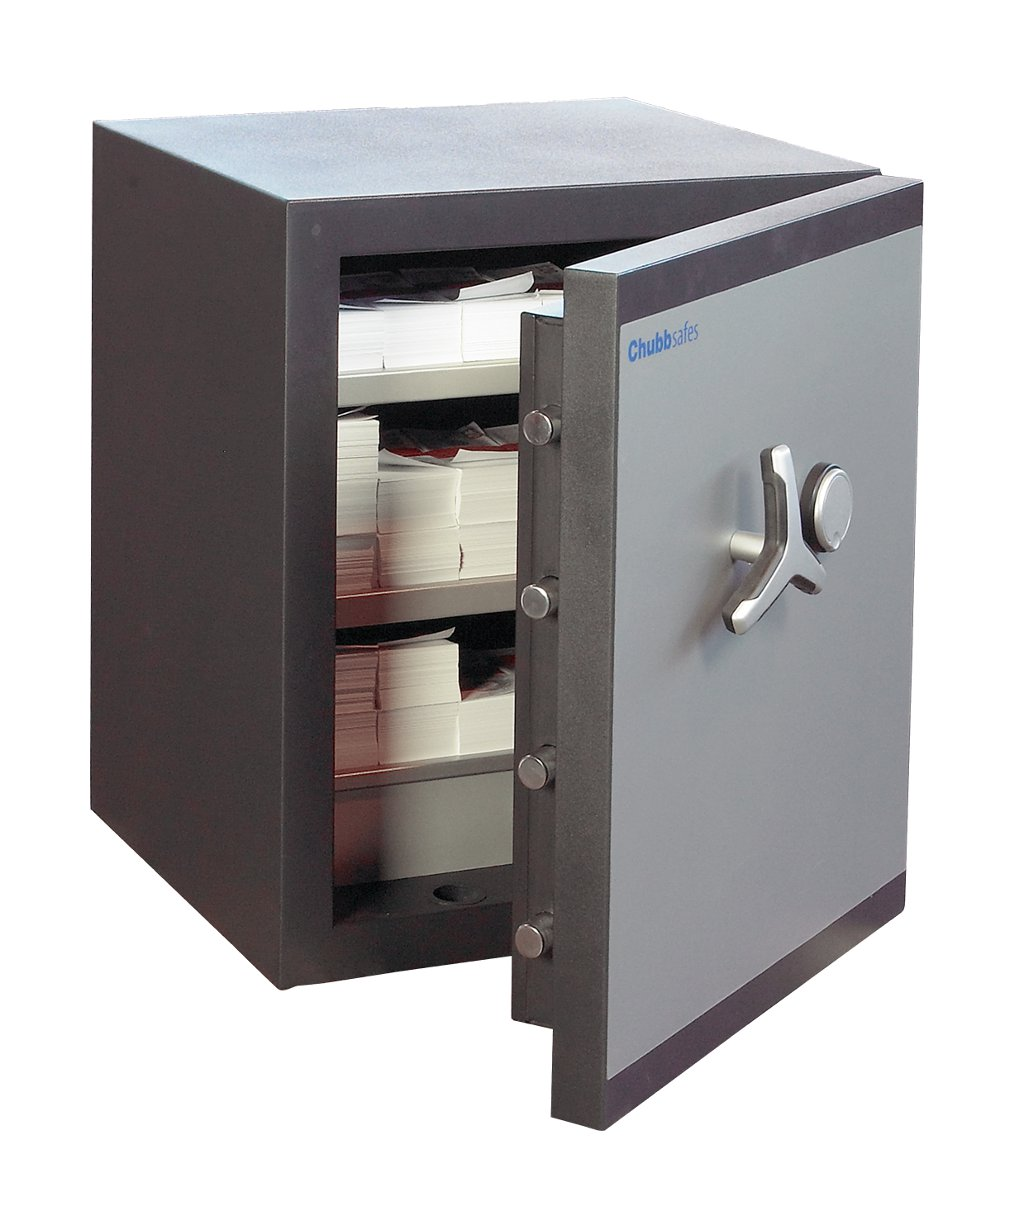 What Makes It Fireproof Fireproof Safes